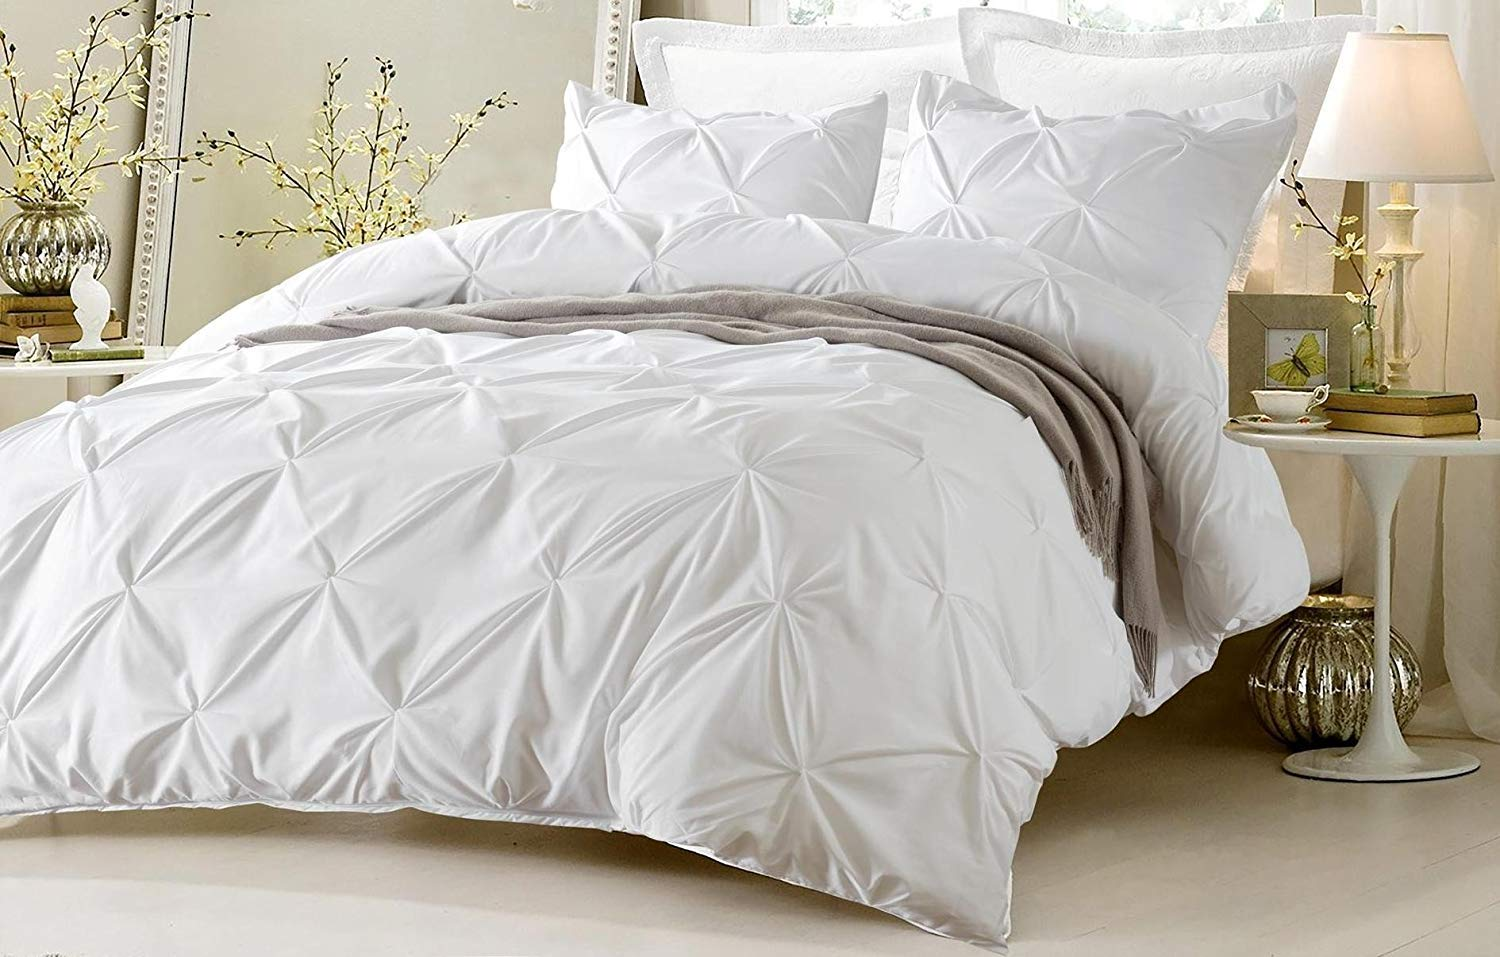 Kotton Culture Pinch Pleated Duvet Cover 100% Egyptian Cotton 600 Thread Count with Zipper & Coner Ties Tuffed Pattern Pintuck Decorative (California King/King, White)